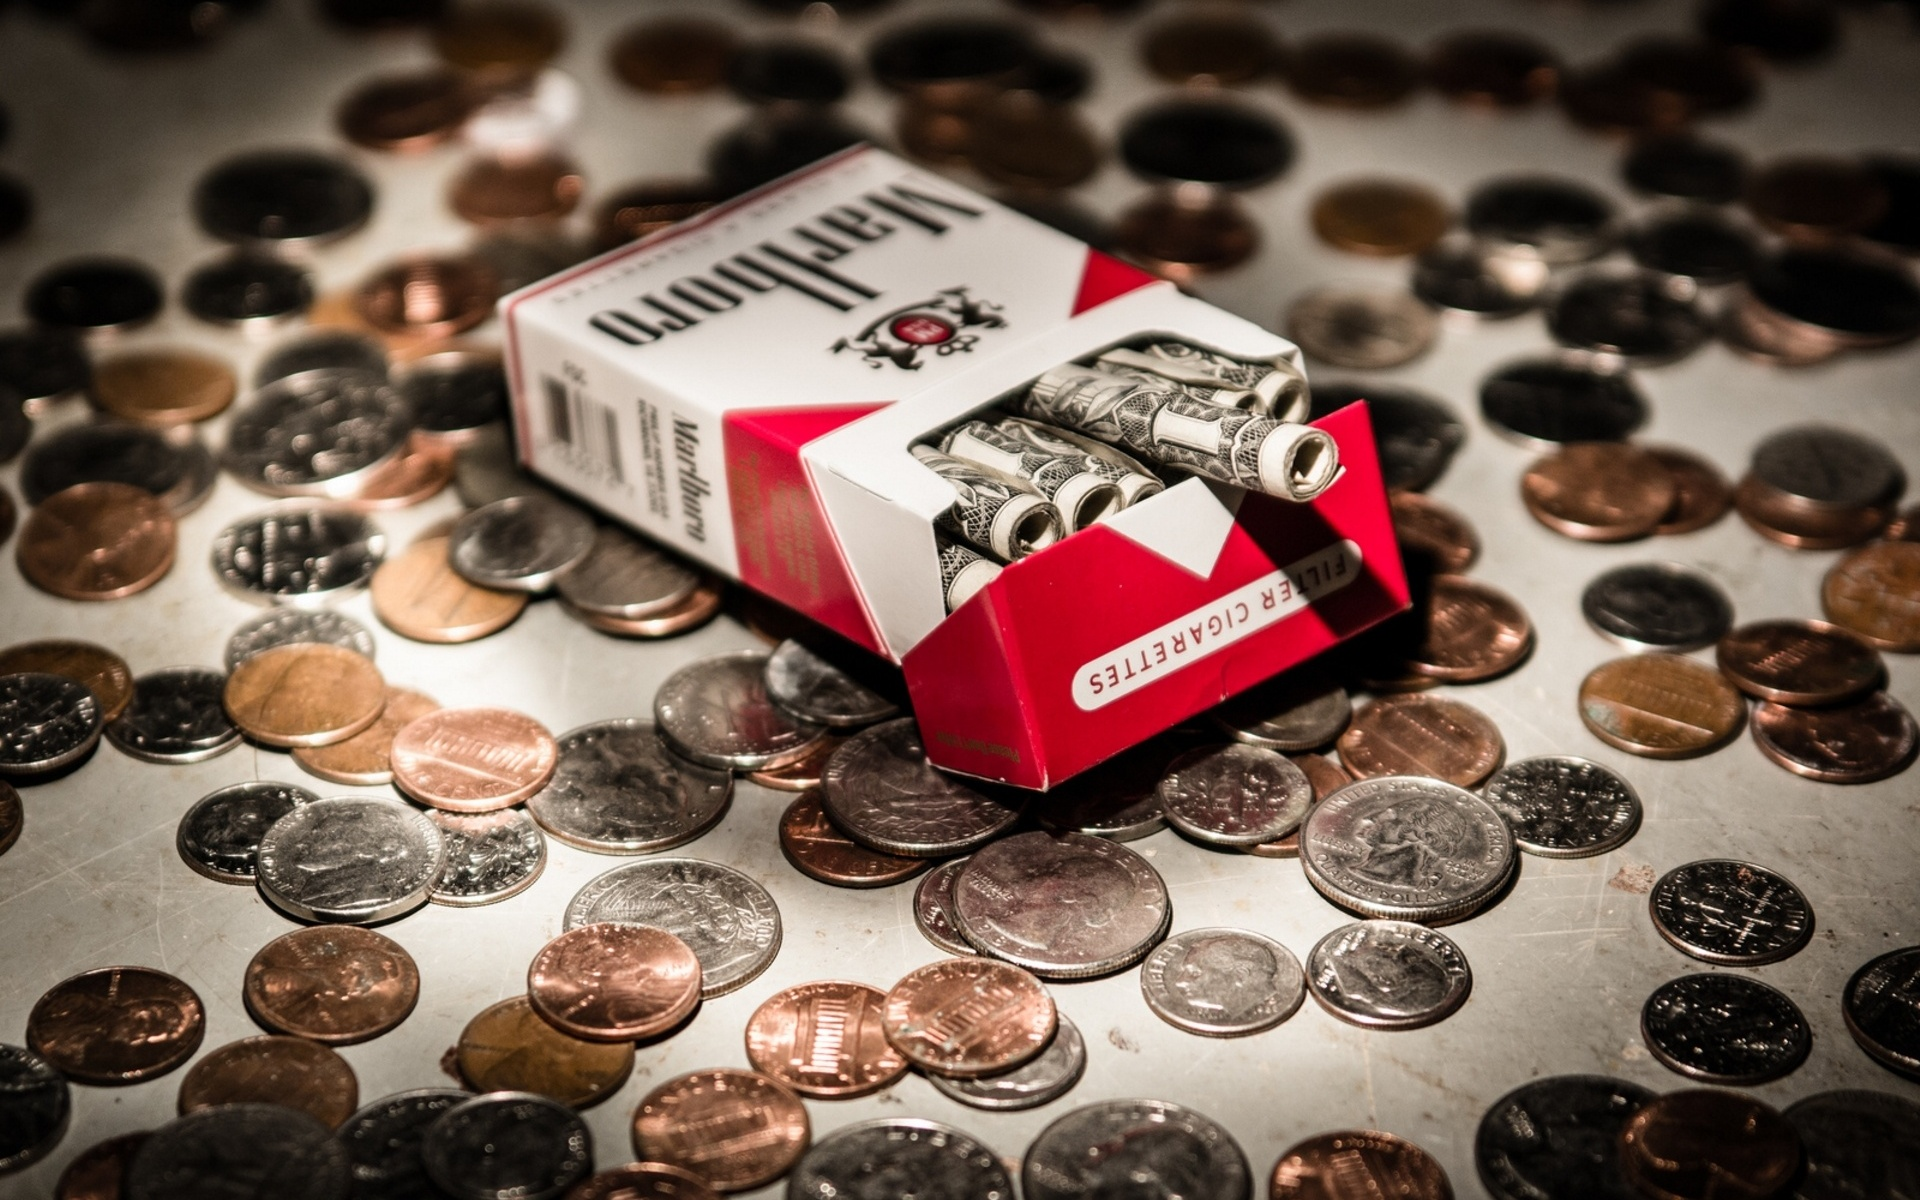 Marlboro Cigarette Wallpaper Hd Money Hd Wallpaper Background Image 1920x1200 Id